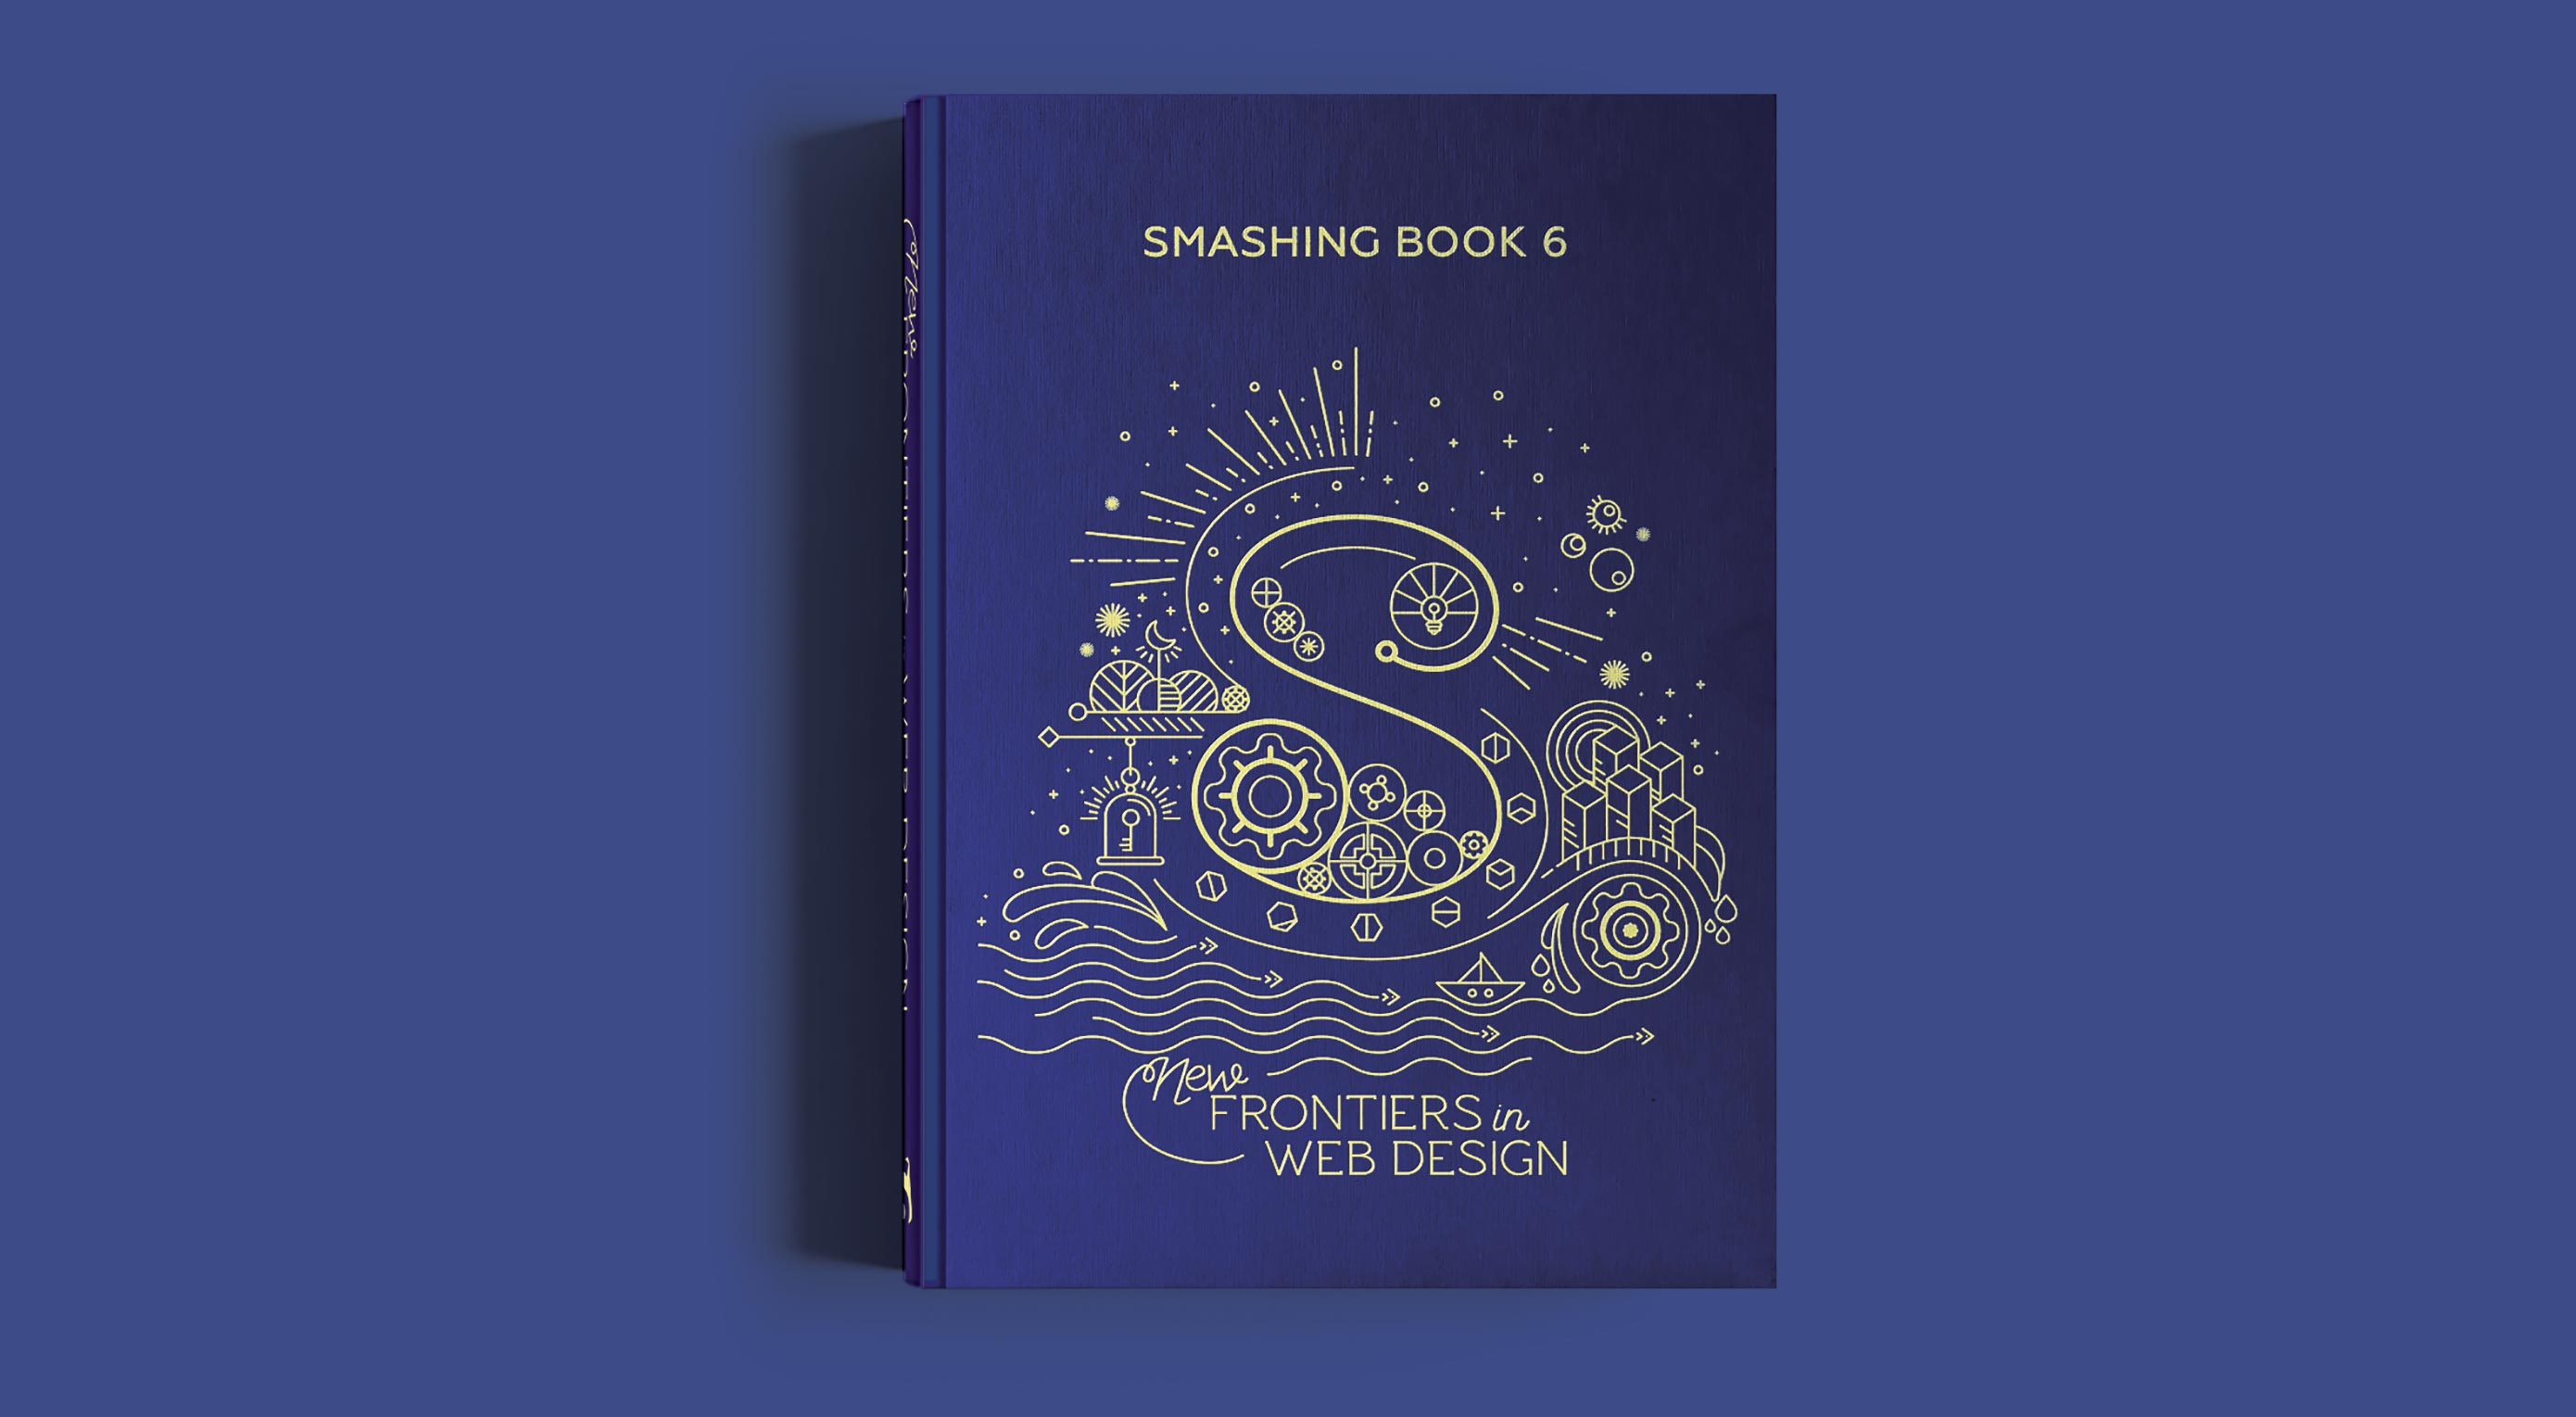 Smashing Book 6 Released